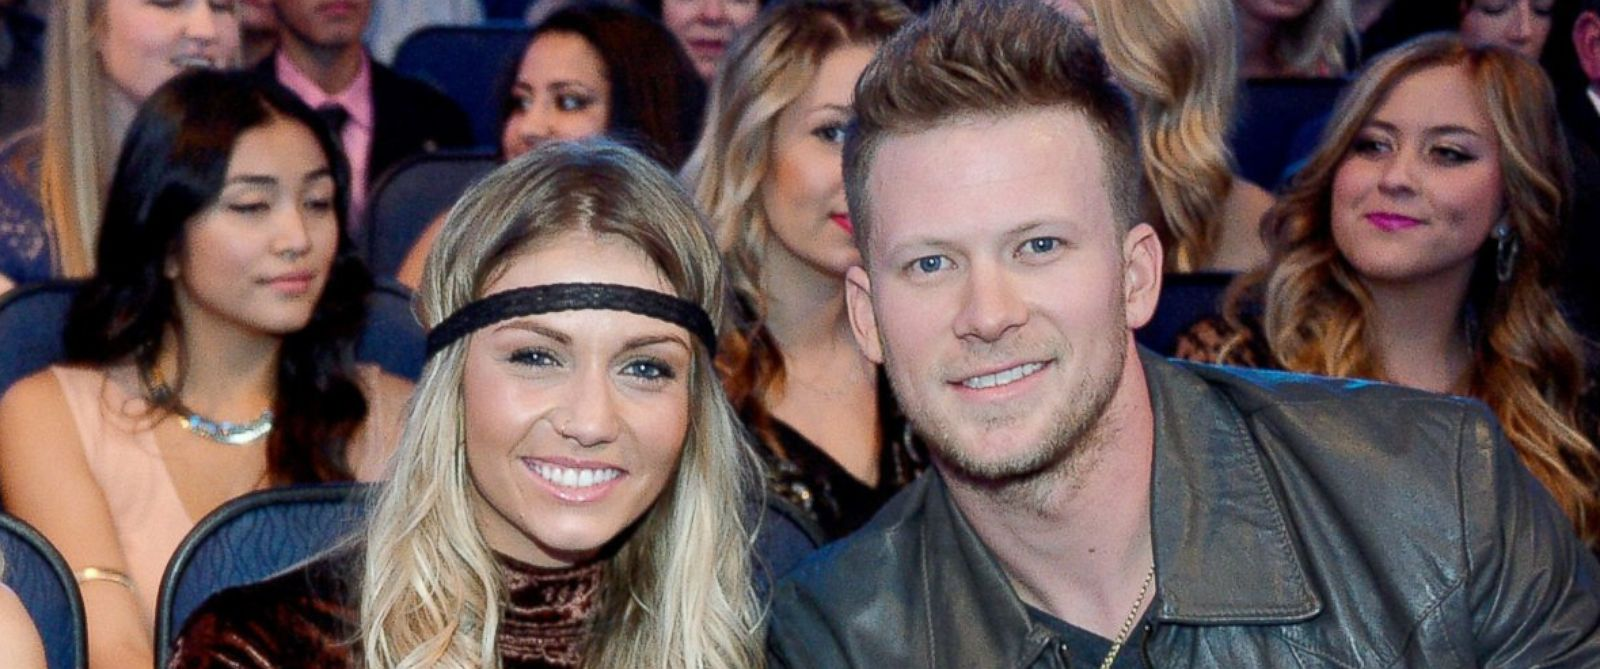 PHOTO: Brian Kelley and Brittney Marie Cole attend the American Music Awards on November 24, 2013 in Los Angeles, Calif.